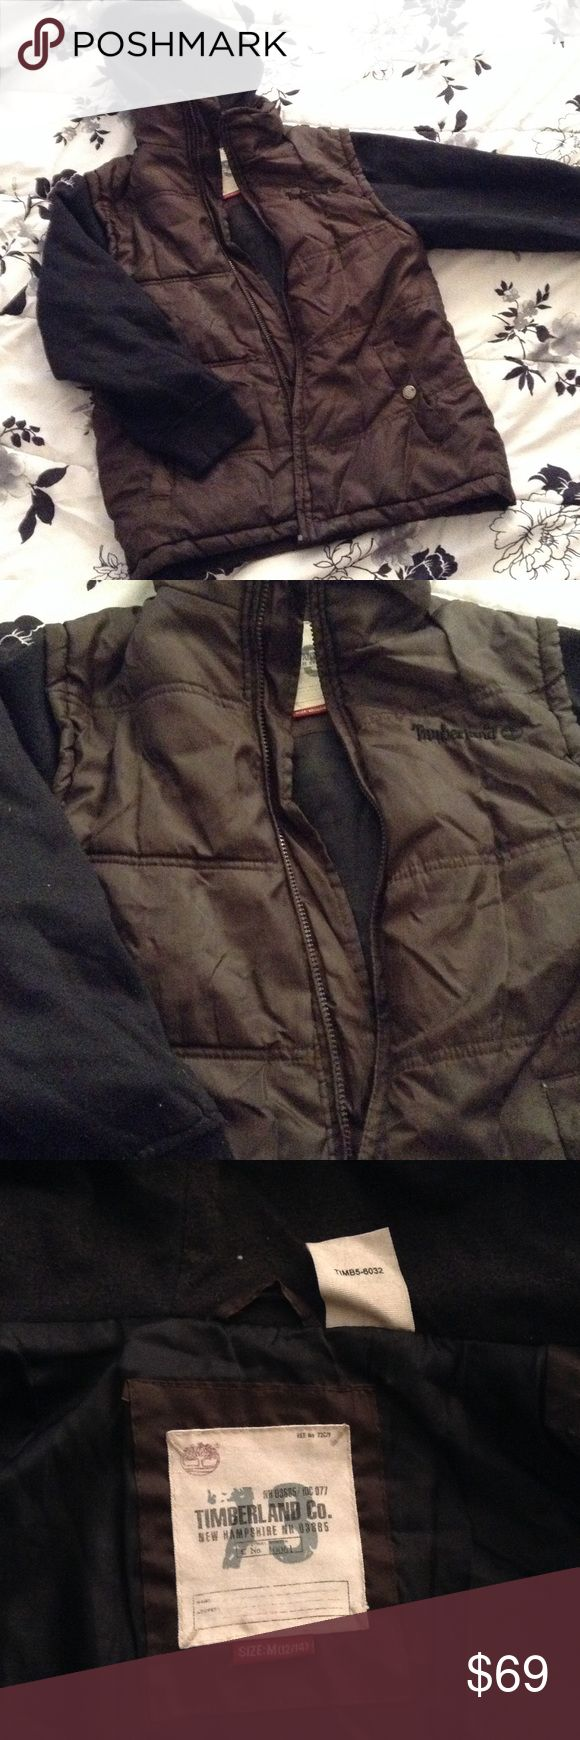 🆕 Boys TIMBERLAND PUFFER HOODIE COAT, Jacket Med Size 10-12 MEDIUM : Brown and Black Timberland Coat, Polyester throughout,  Hood/Sleeves are Cotton/Poly blend. Perfect condition with the exception of a missing zipper. Price reflective of missing zipper. Otherwise this is a great piece to own. Nice for camping in winter or summer or Winter Wear! Sold as is. Timberland Jackets & Coats